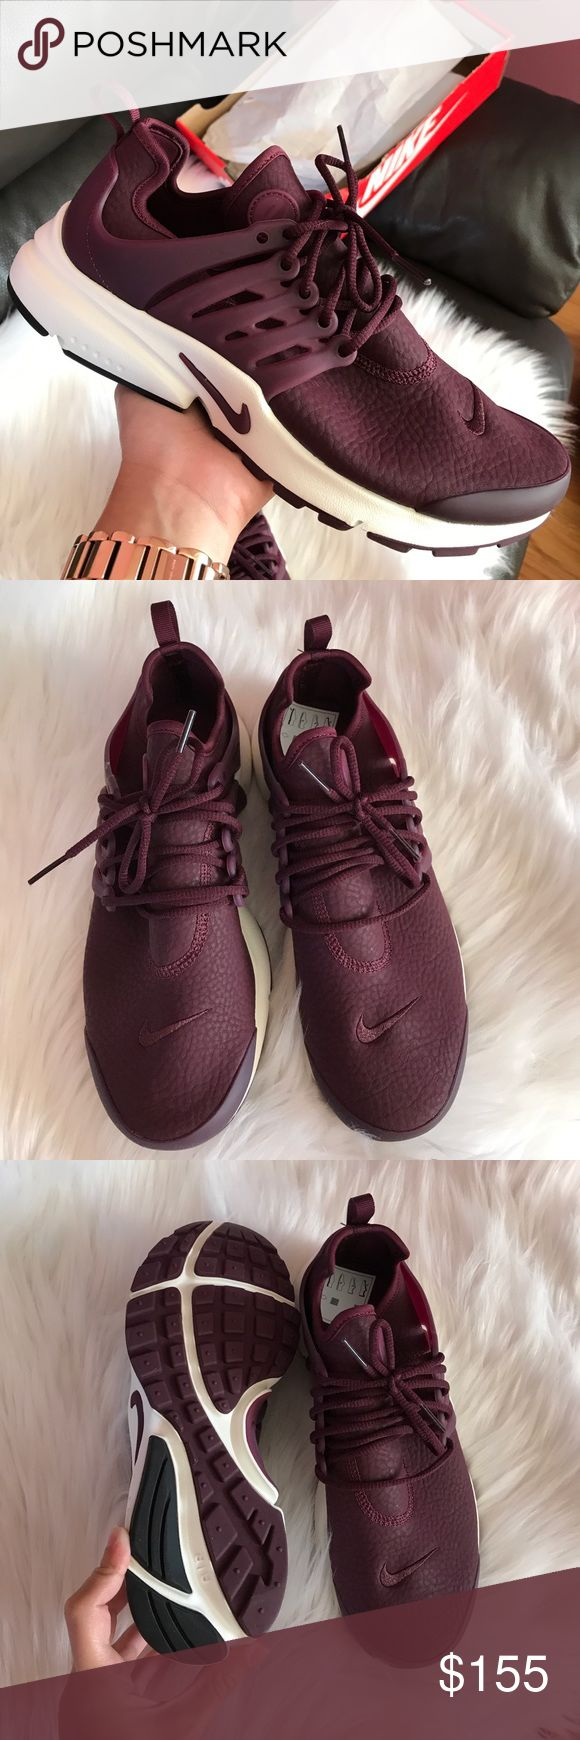 Nike Air Presto Sneakers Woman's Nike Air Presto Sneakers Style: 878071-600 Maroon and white New with original box, no lid UPC and box varies with size  -Price is firm Nike Shoes Sneakers